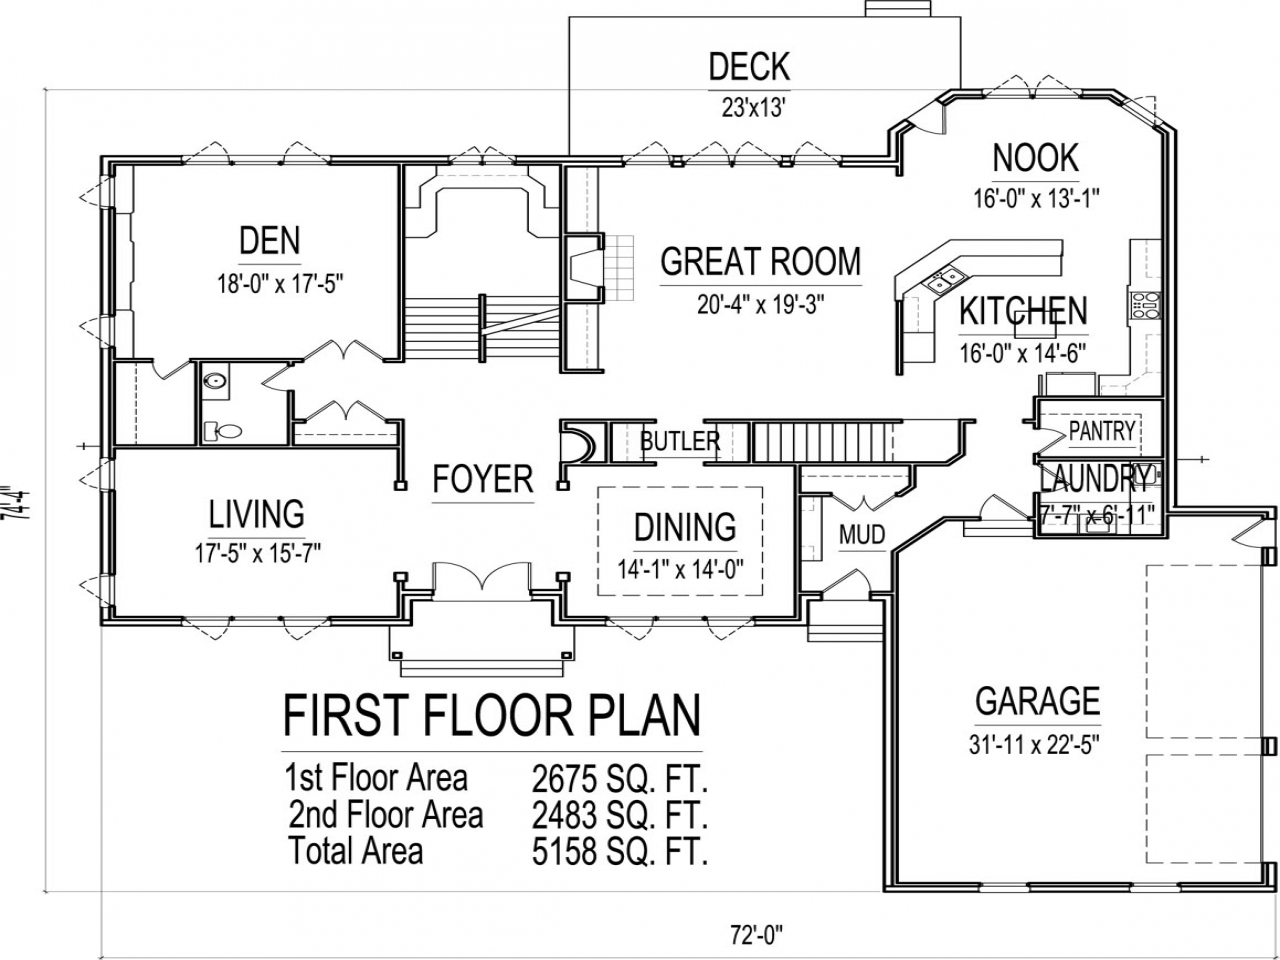 5000 Sq Ft House Floor Plans 1500 Sq Ft House 2 Story 5 Bedroom Floor Plans Treesranch Com